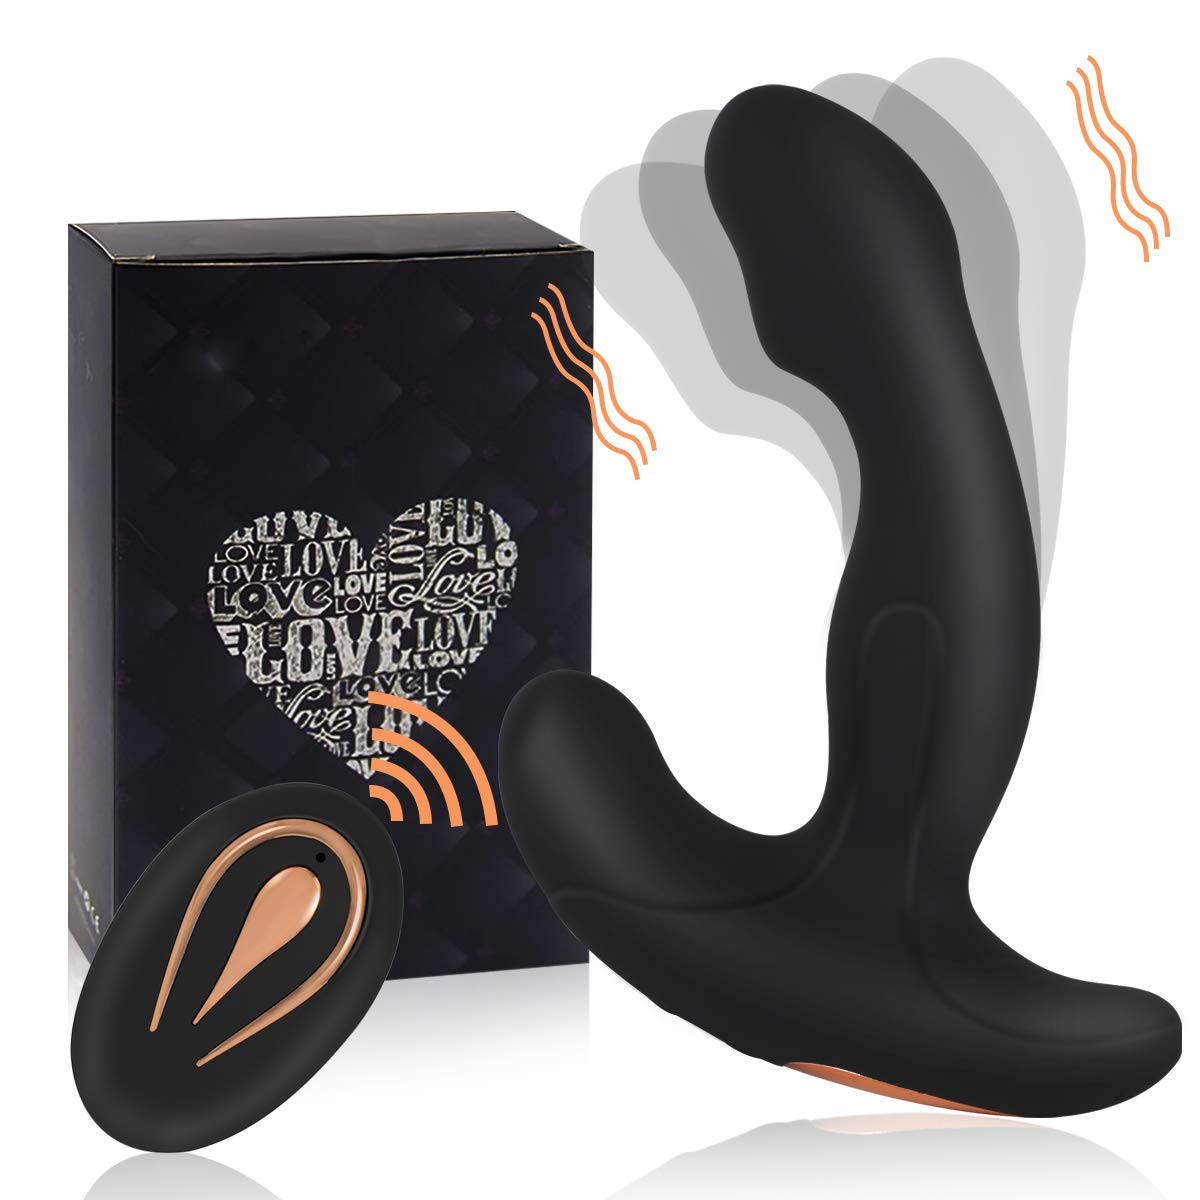 yarlung Remote Control Vibrating Prostate Massager with 2 Powerful Motors and 12 Mode Vibration for Women and Men, Unisex Anal and G Spot Sex Toy